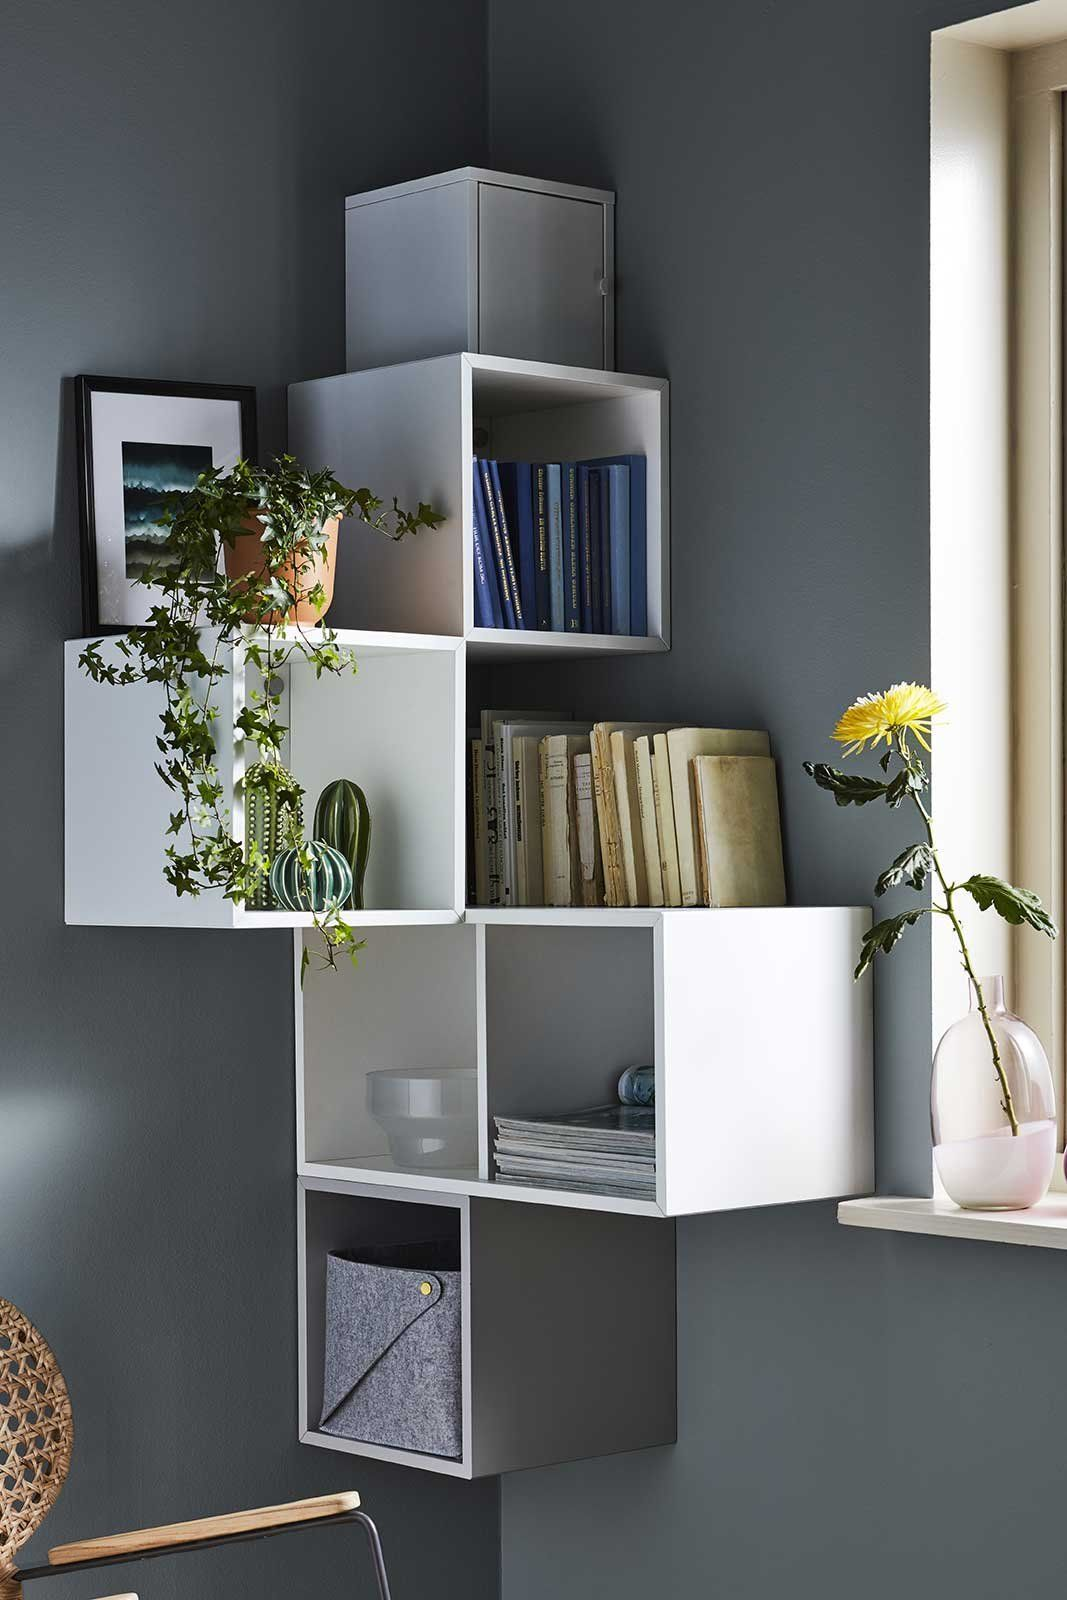 Bookshelf Tv Stand Office Storage Column Discover 15 Ways To Optimize And Decorate The Corner Of A Room A Shopping